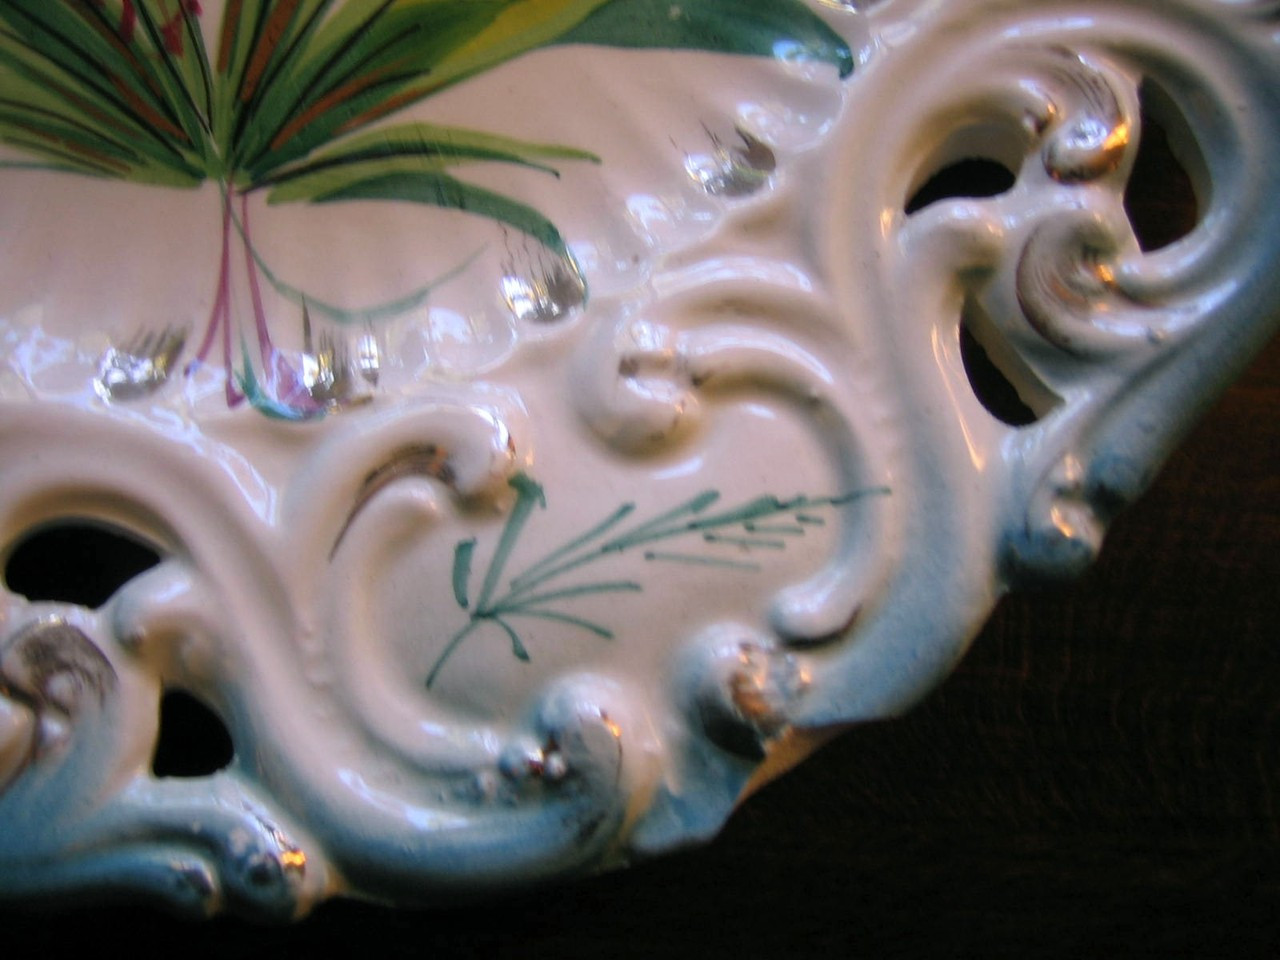 Vintage Decorative Plate - Aqua Pierced Purple Flower Gold Leaf Handpainted in Italy Edge www.DecorativeDishes.net